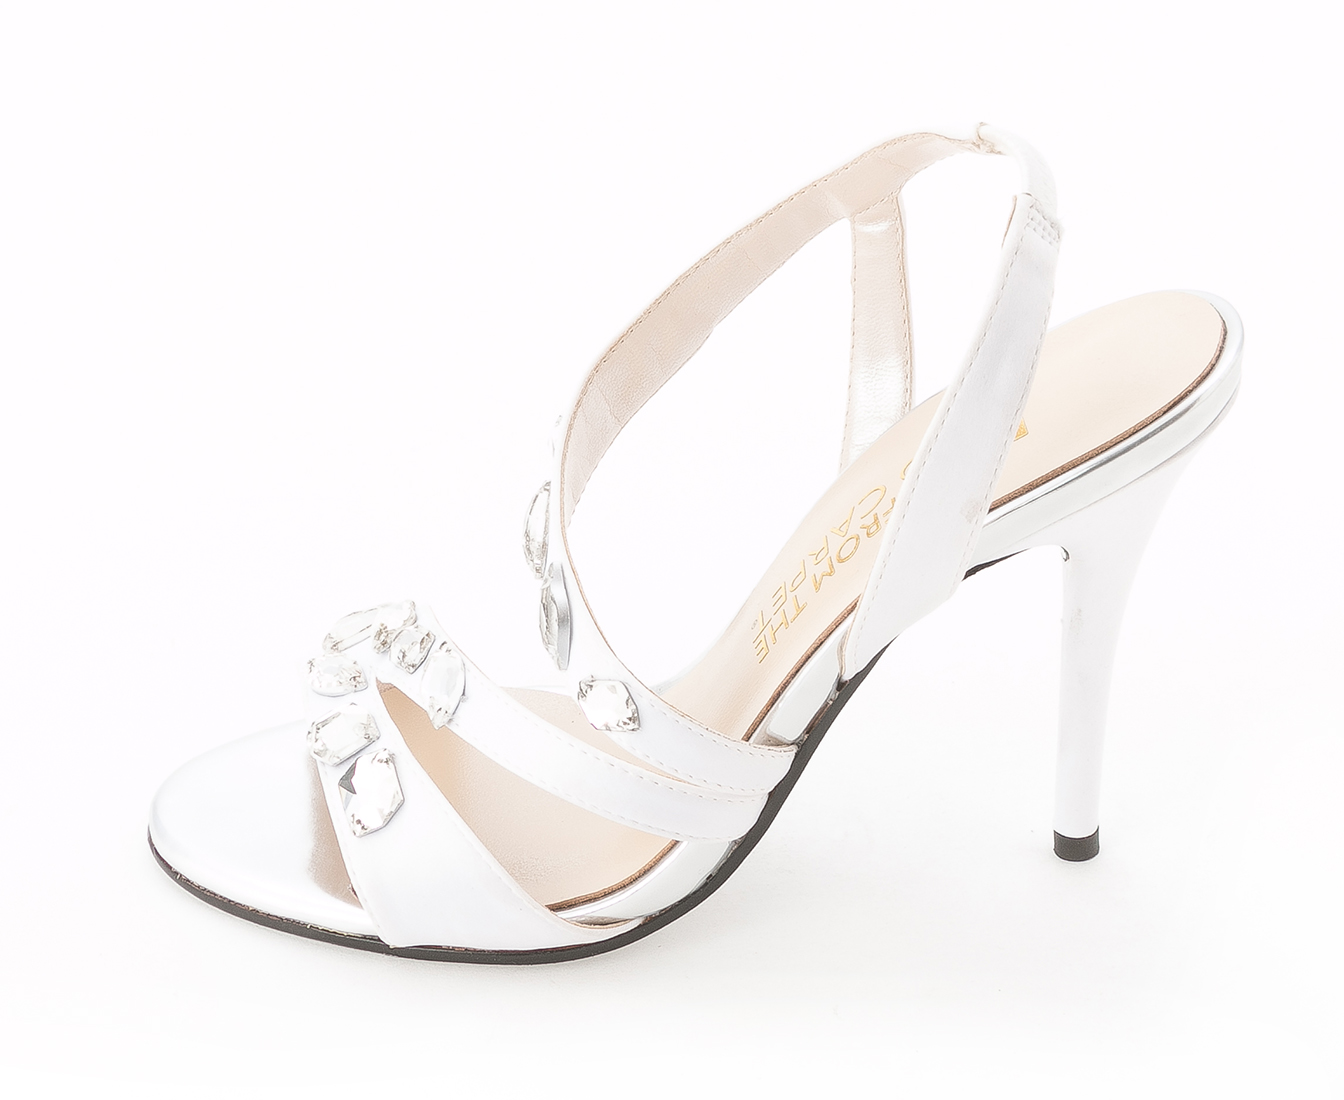 E! Live From The Red Carpet Womens GOLDEE Open Toe Formal Slingback Sandals